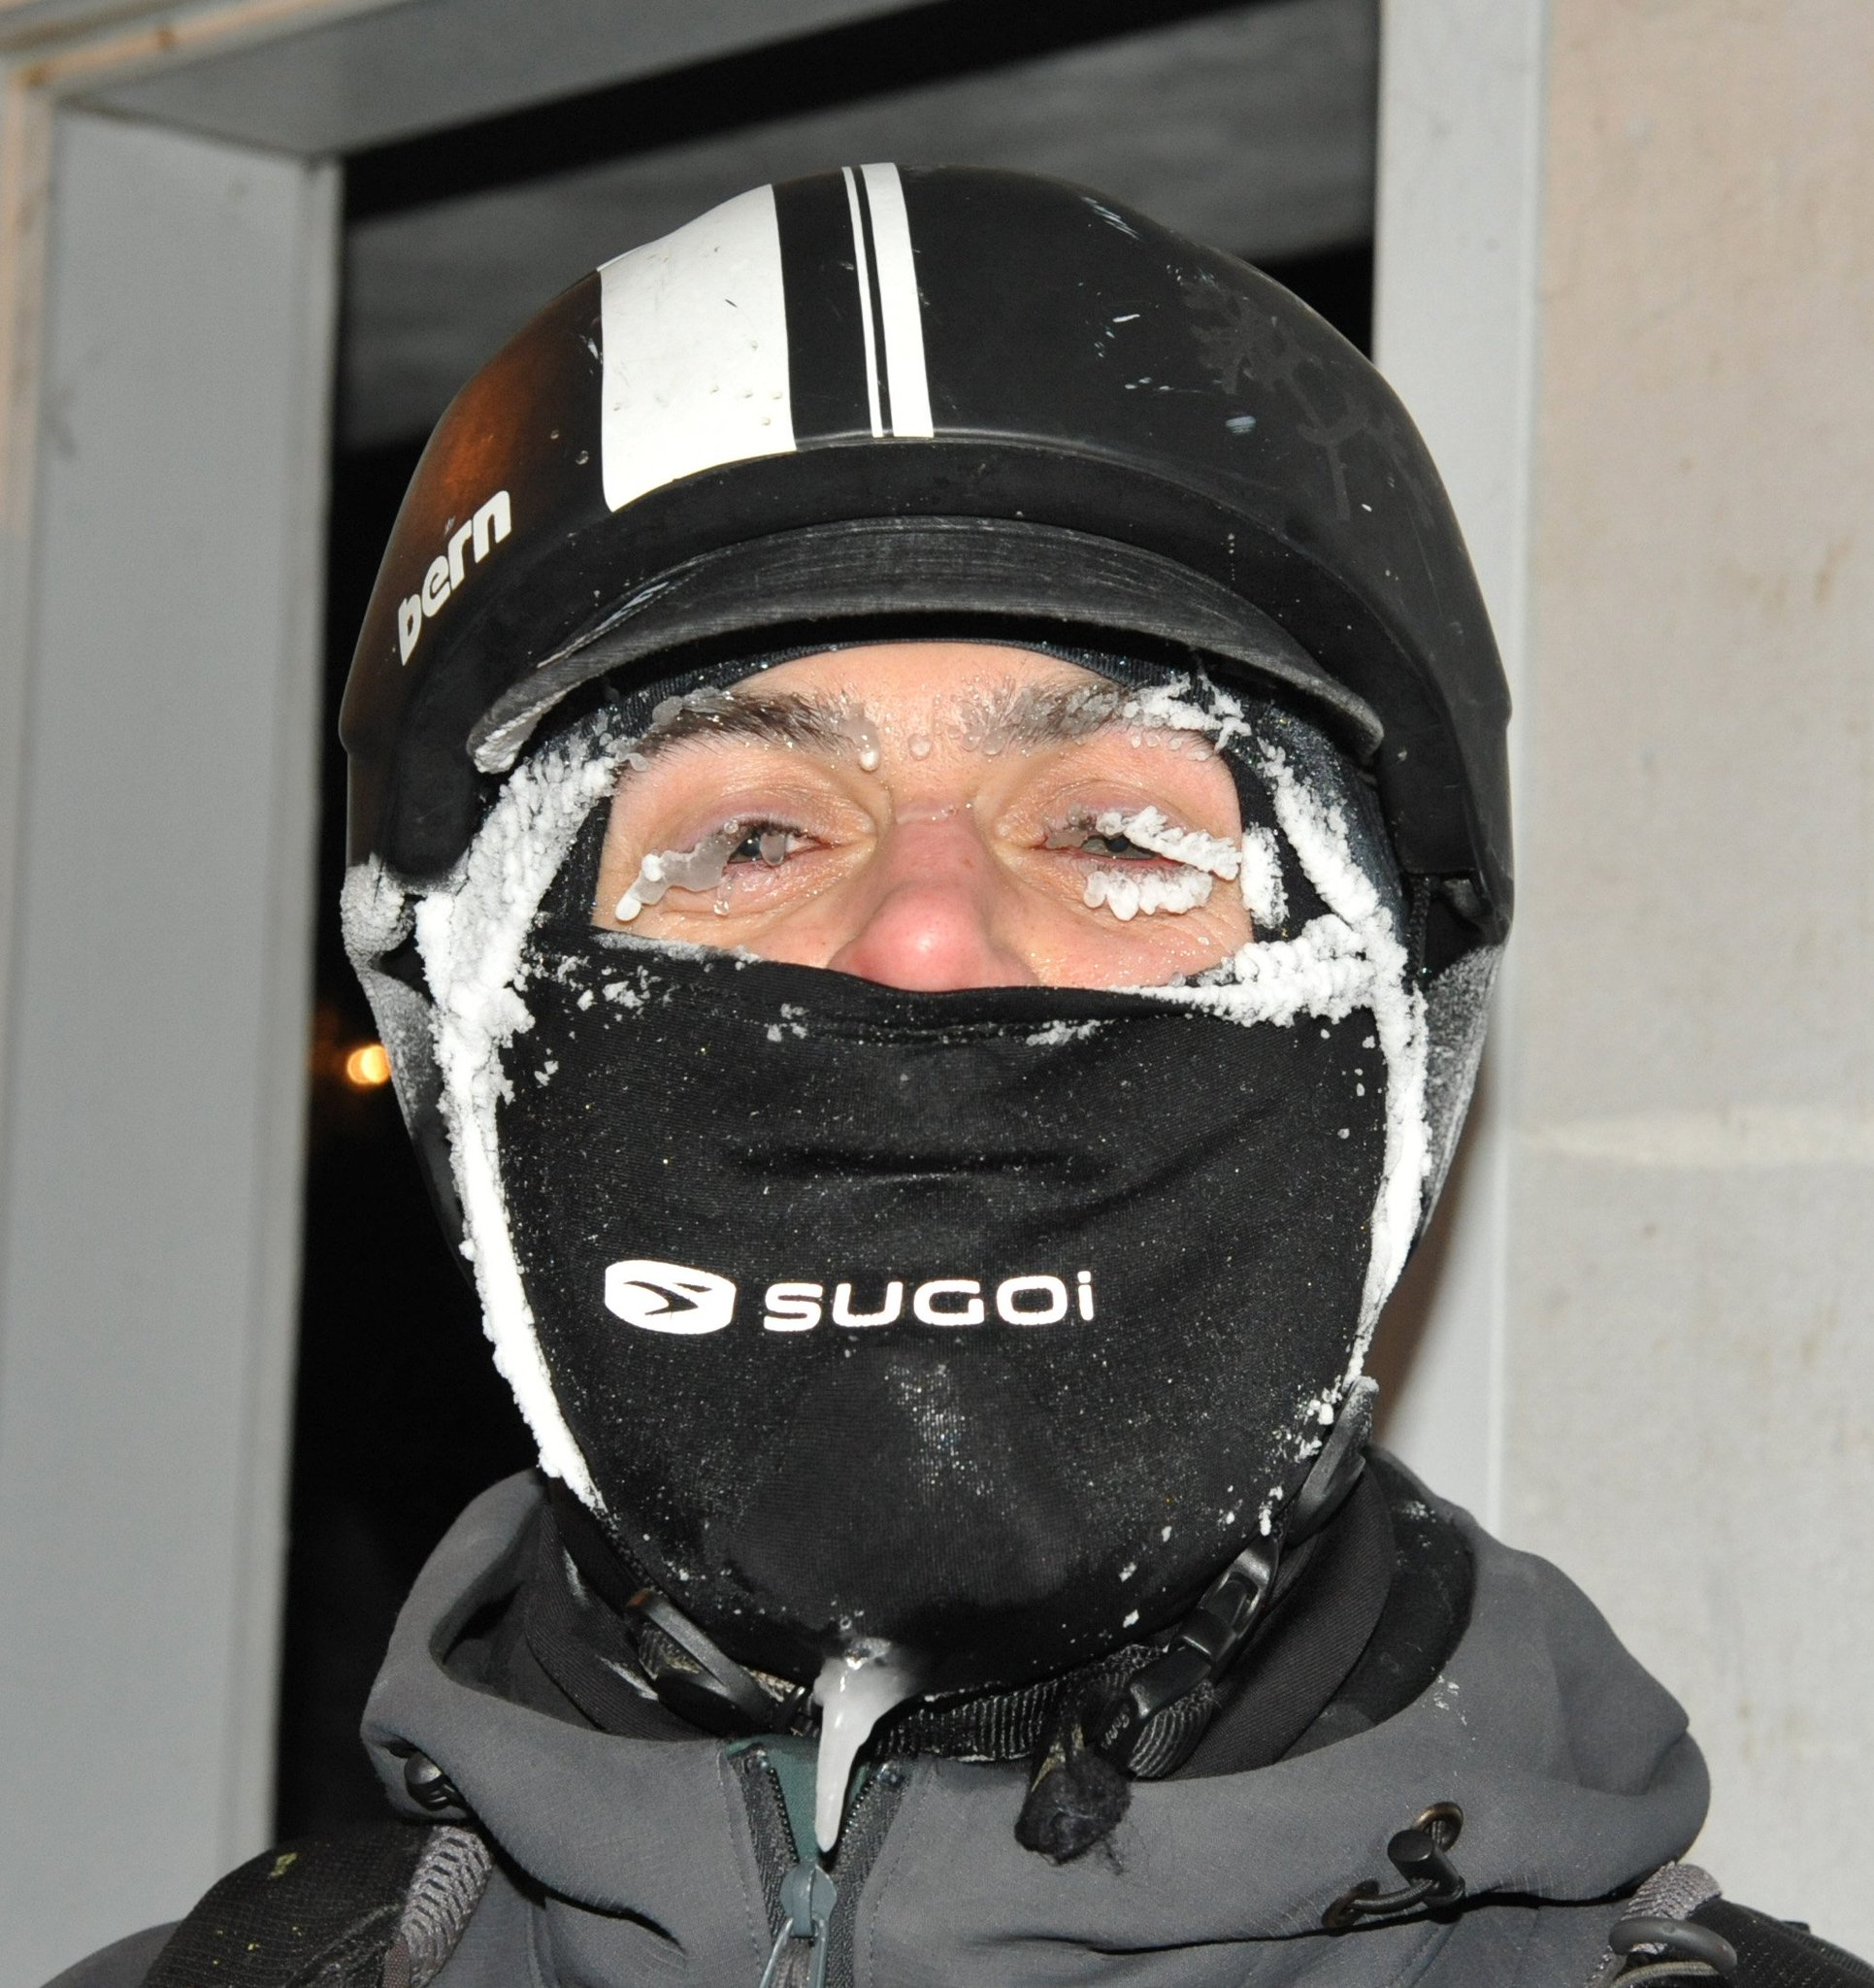 In appreciation of my goofy colleagues 3: Rowan Barrett shows how to bike 20 km in -30C. @RDHBarrett https://t.co/NNVymiUOdk